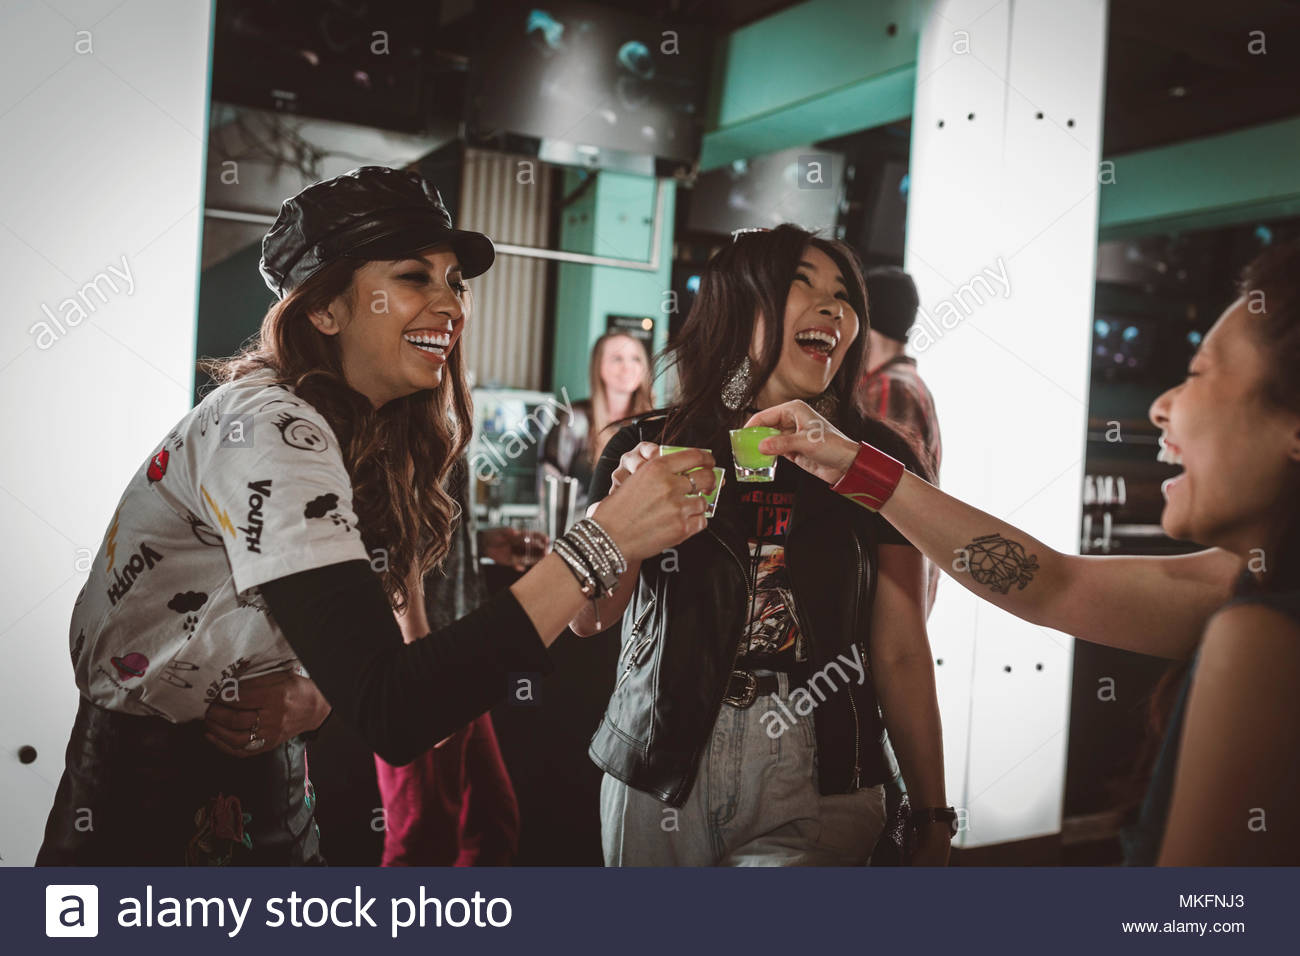 Female millennial friends taking shots, partying in nightclub bar - Stock Image